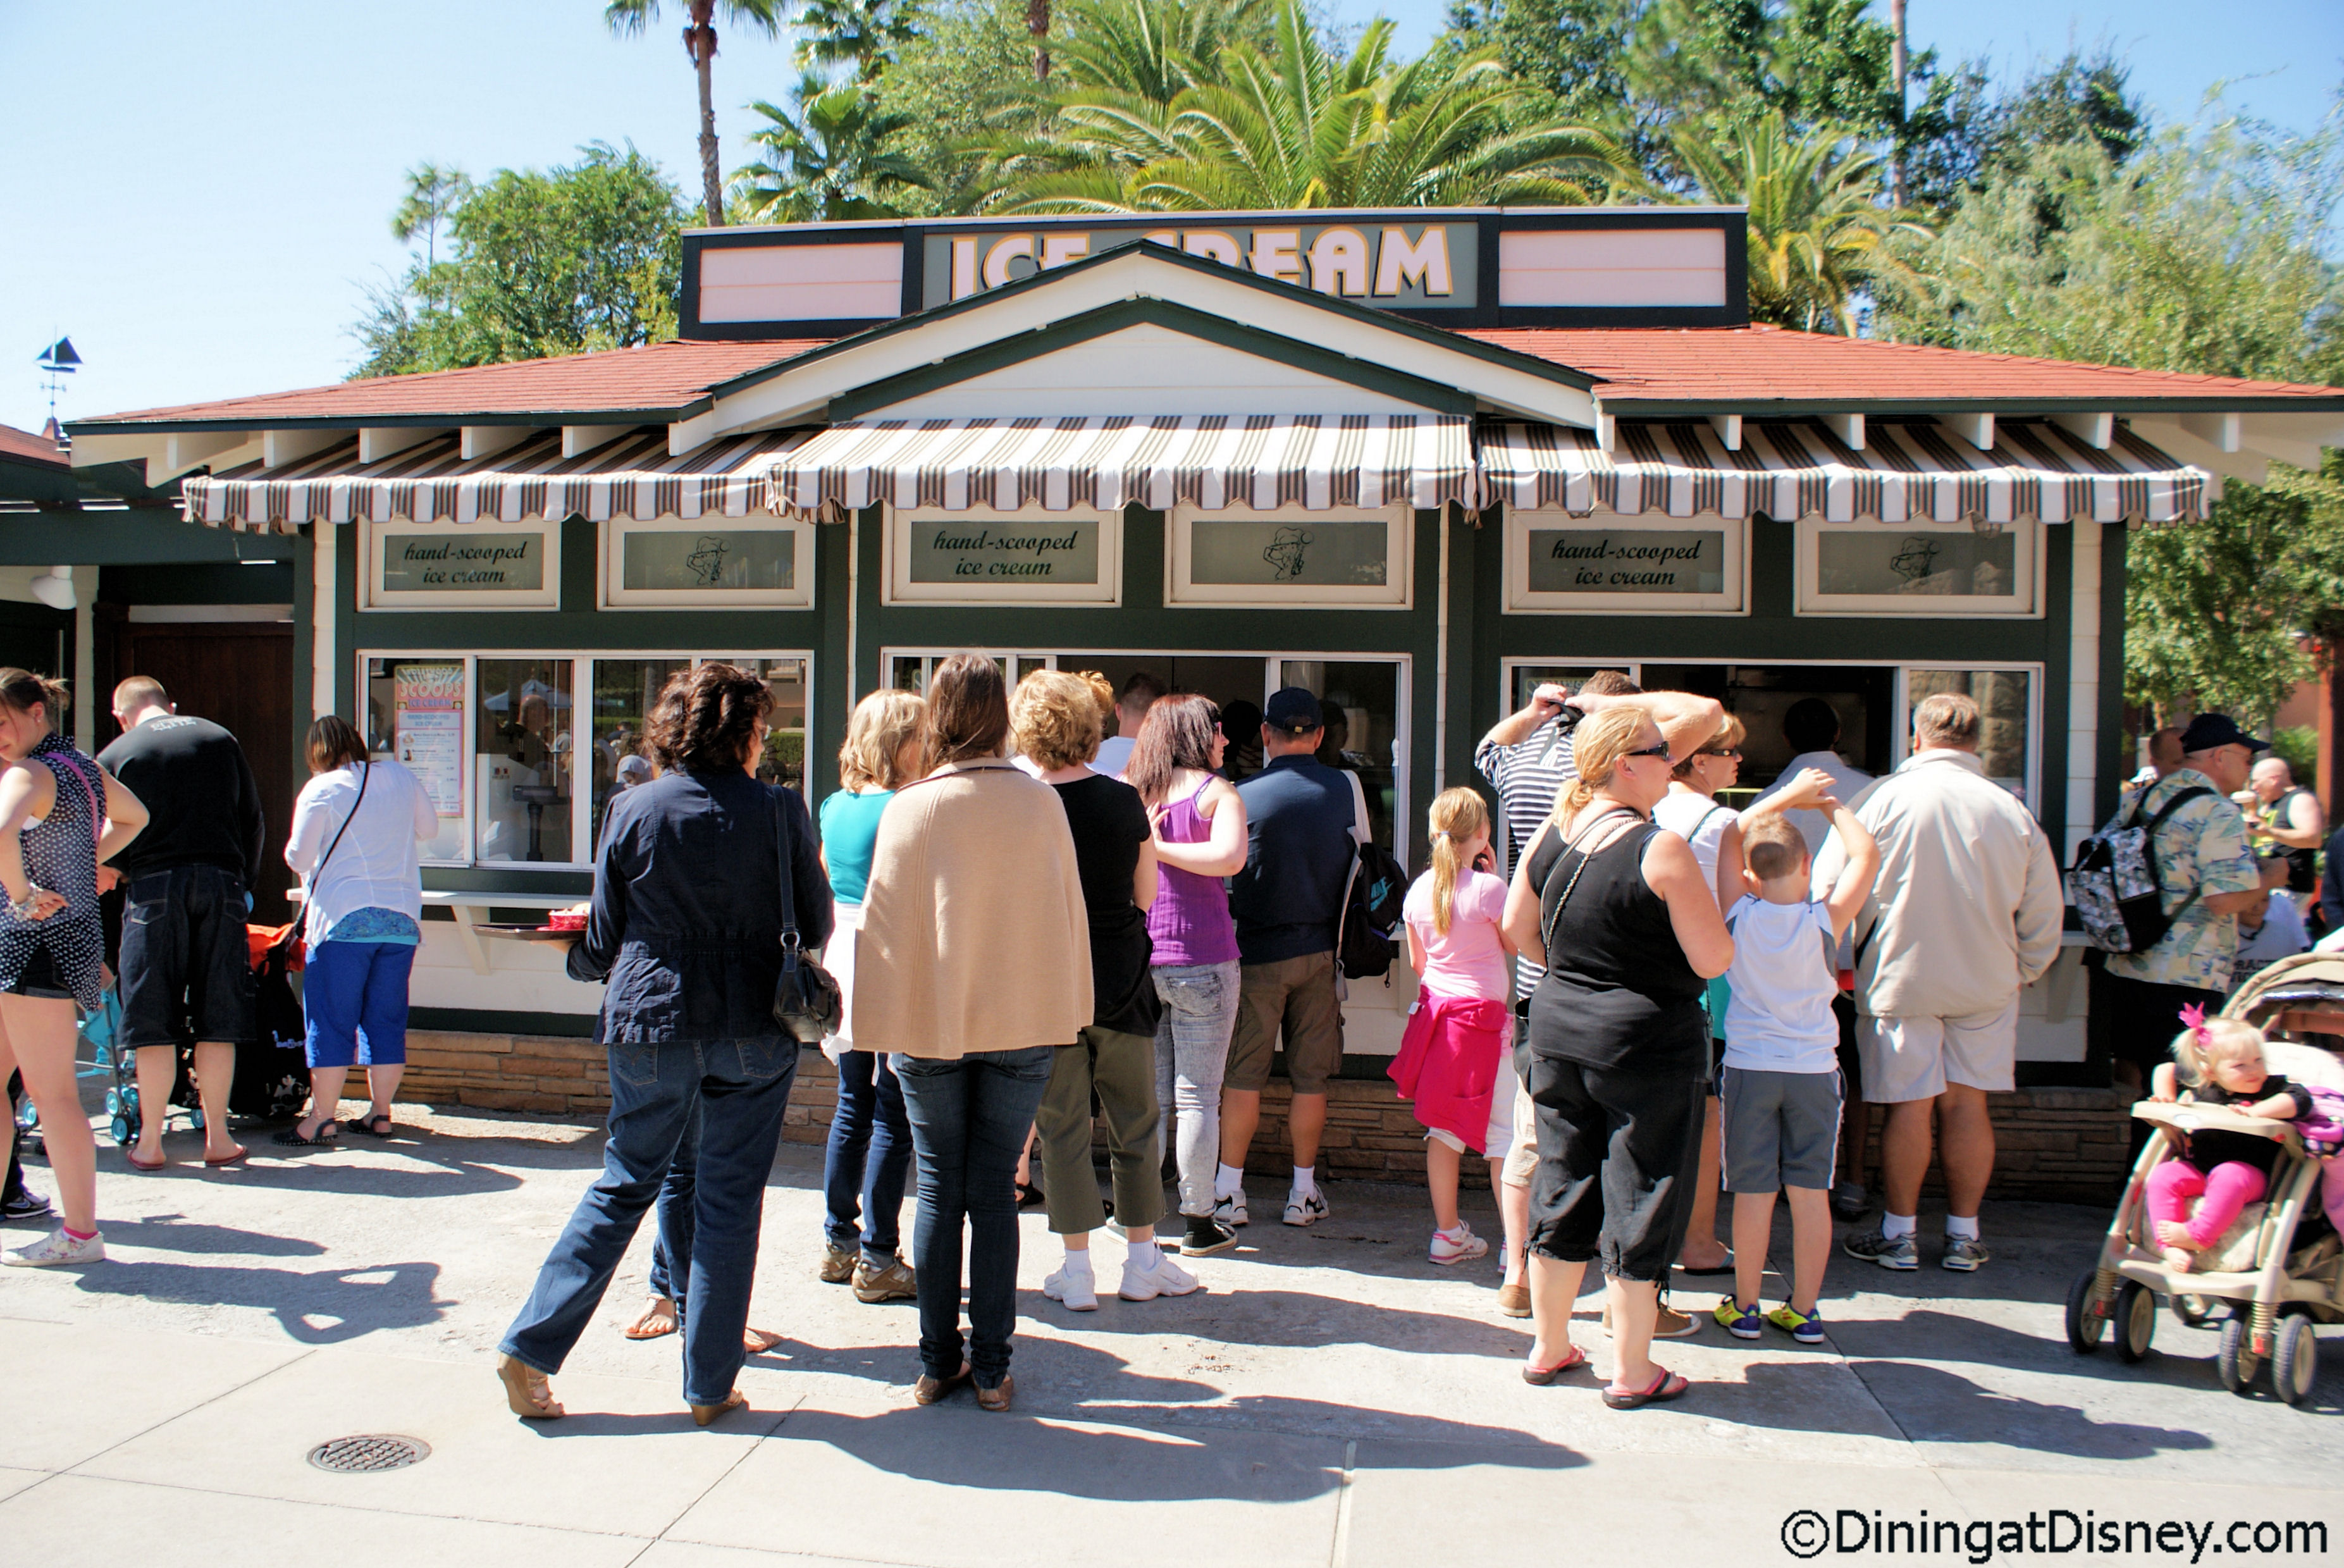 Hollywood Scoops Ice Cream overview - Photo 1 of 5